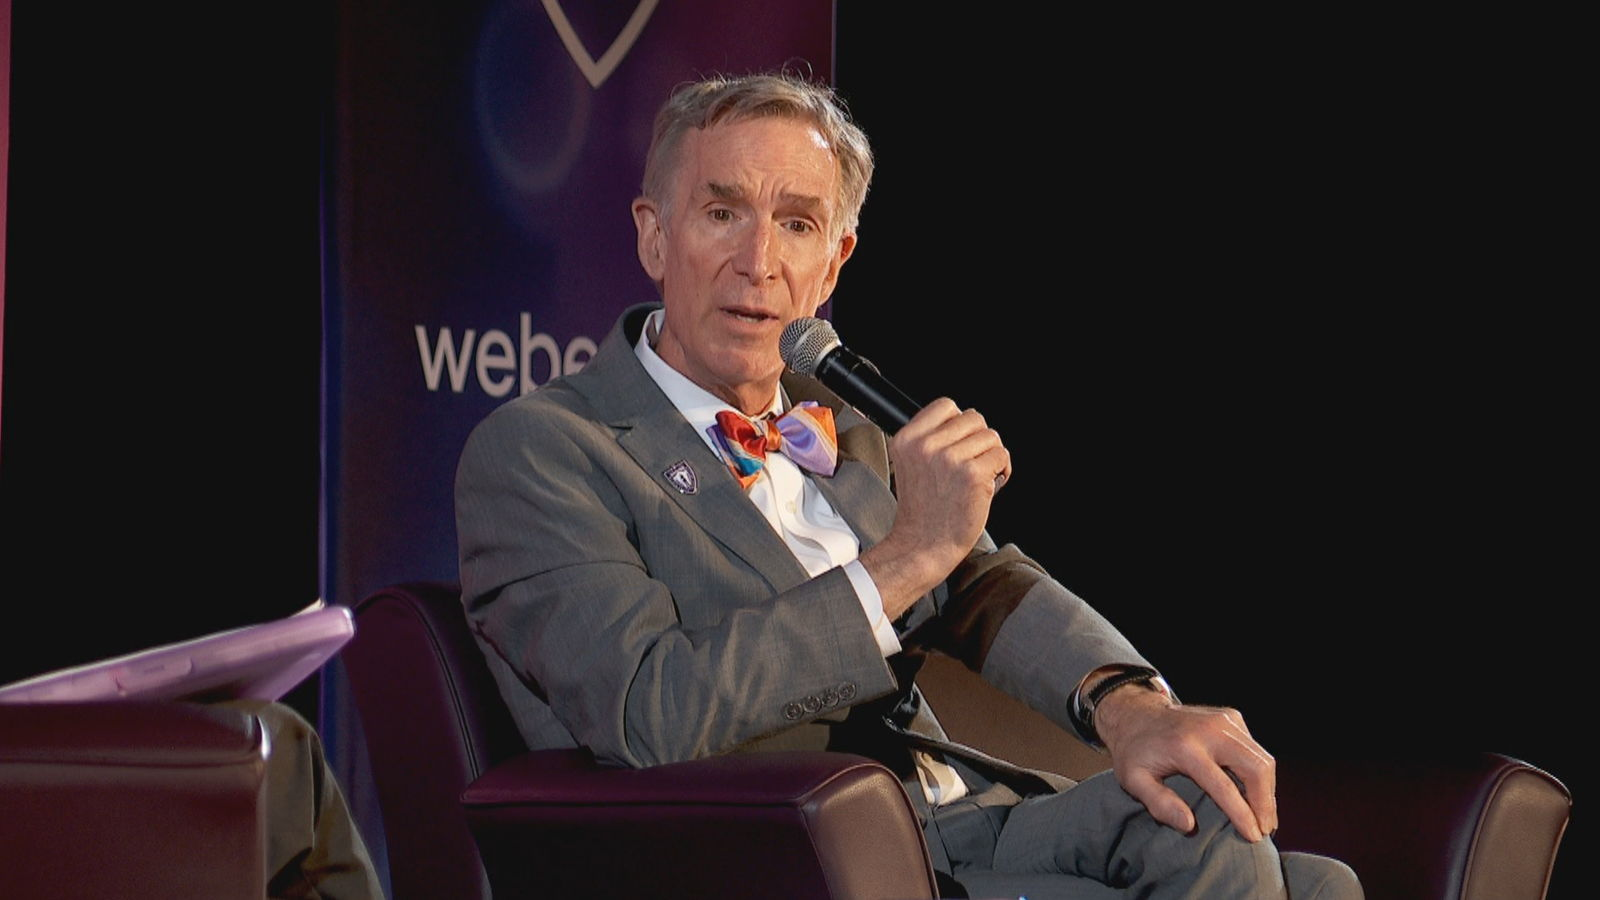 Bill Nye{ }engaged a packed audience at the Weber State University Dee Events Center in a 90-minute moderated conversation on Wednesday. (Photo: KUTV)